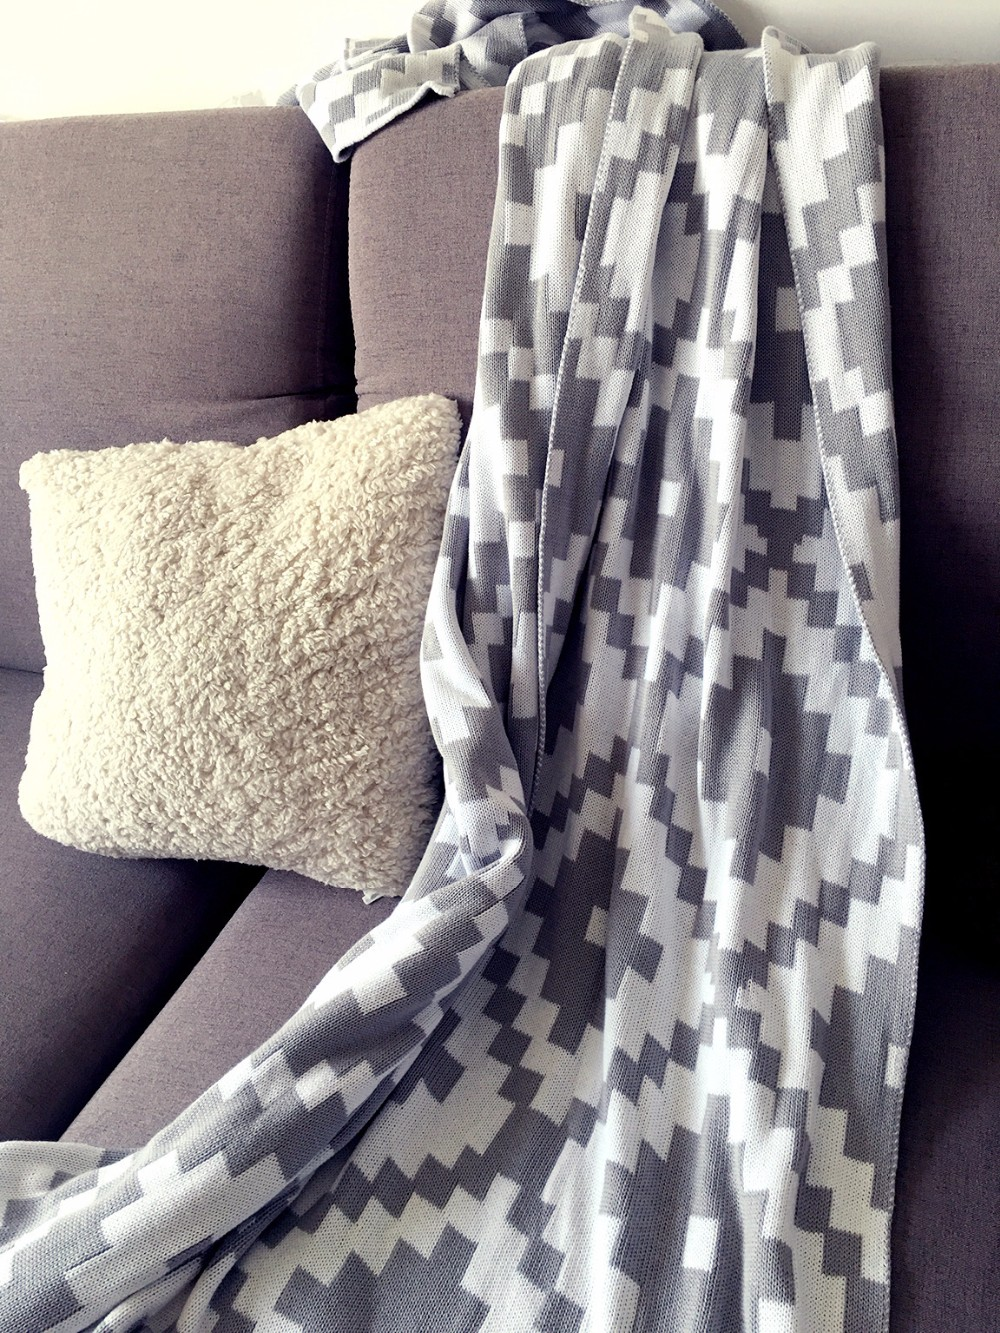 blankets air conditioning cover 8